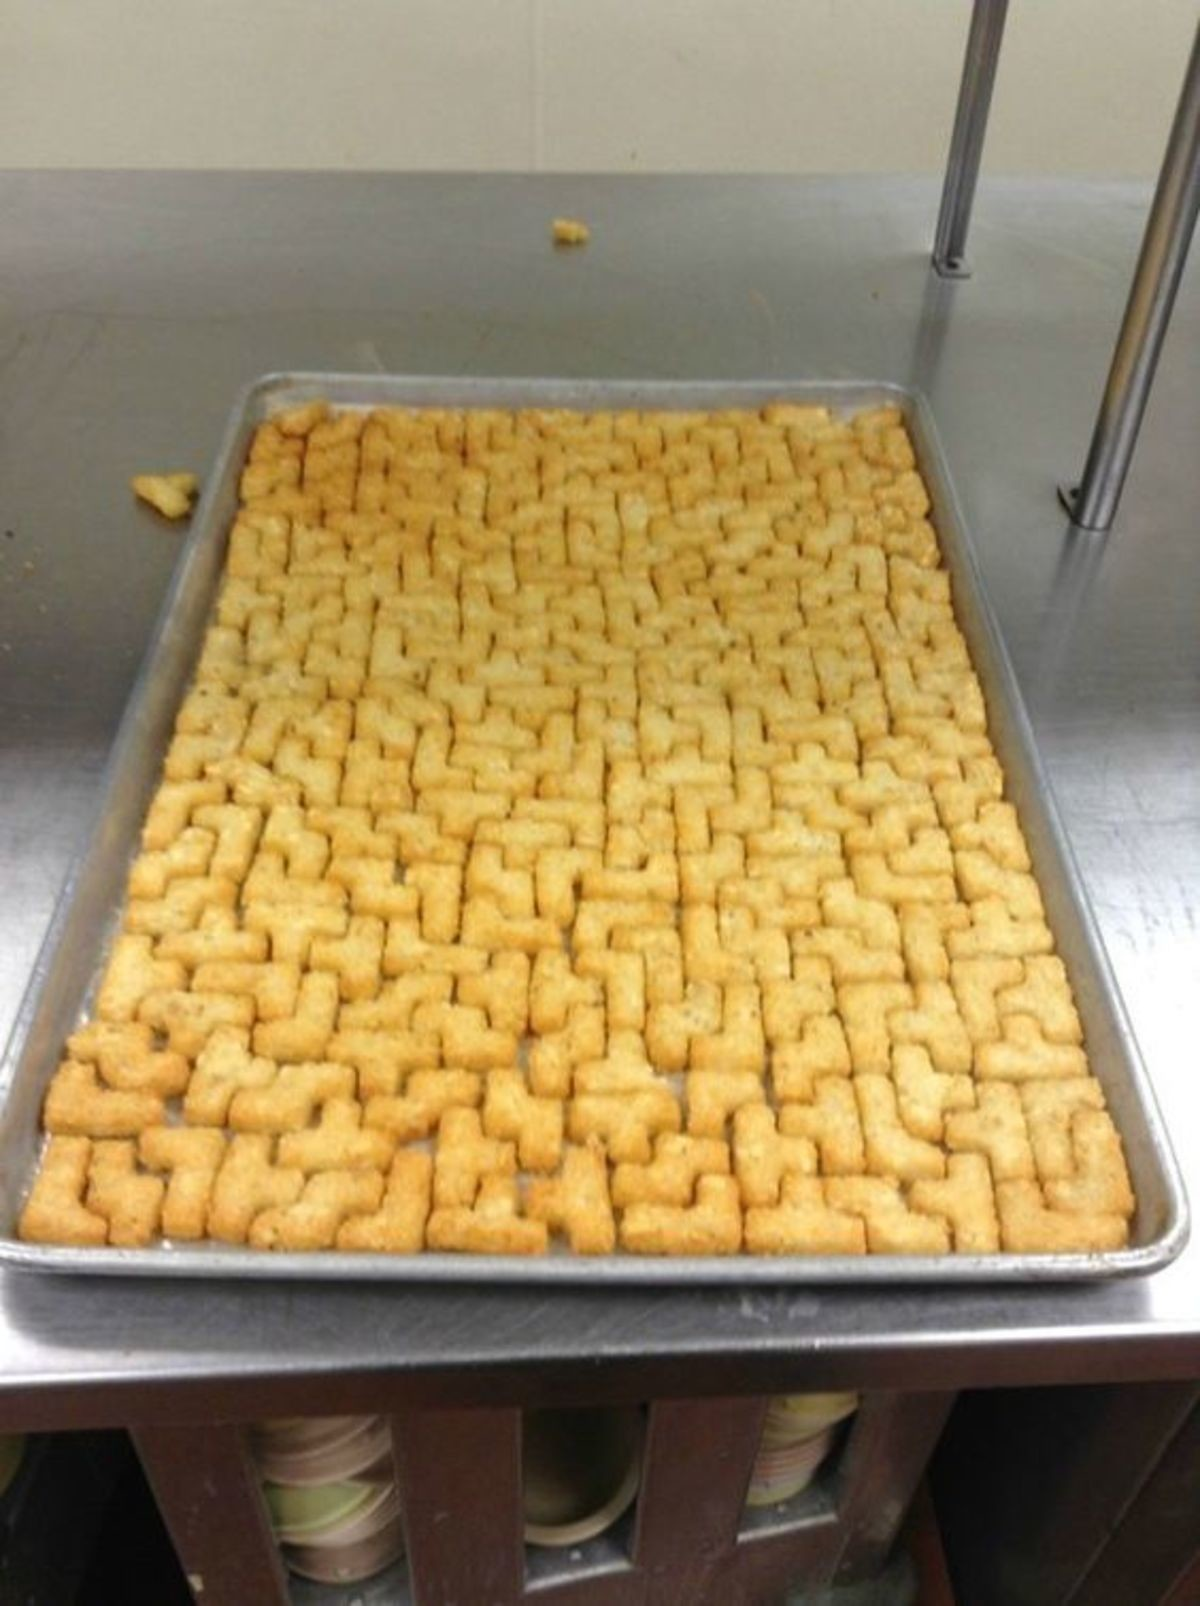 Tetris Tots. .. oh god you summoned him...